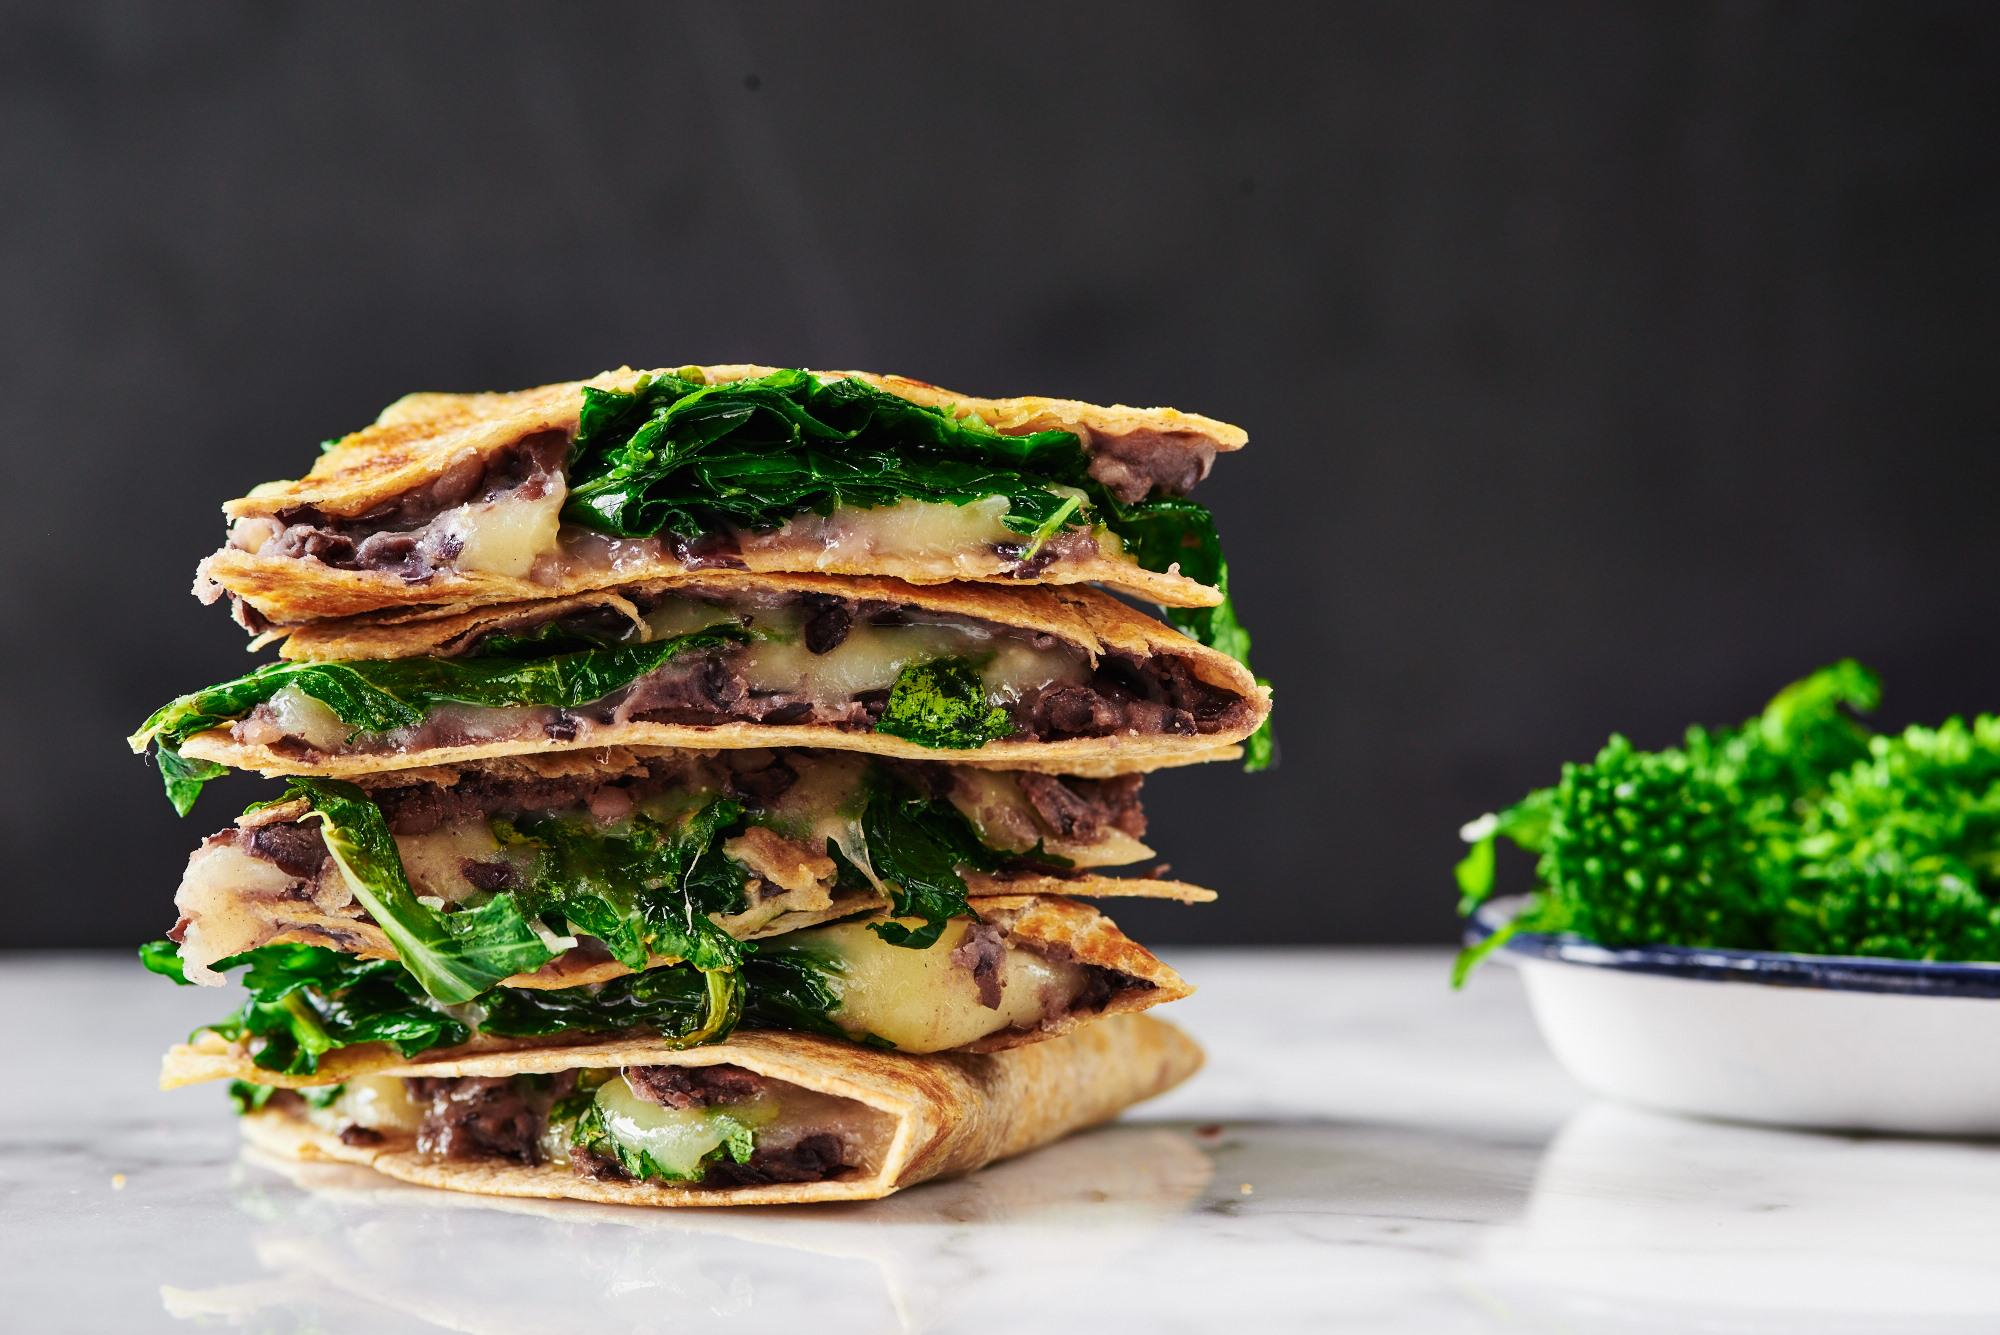 Celebrate Wellness With 4 Nutrient-Packed Cinco de Mayo Recipes Featuring Broccoli Rabe